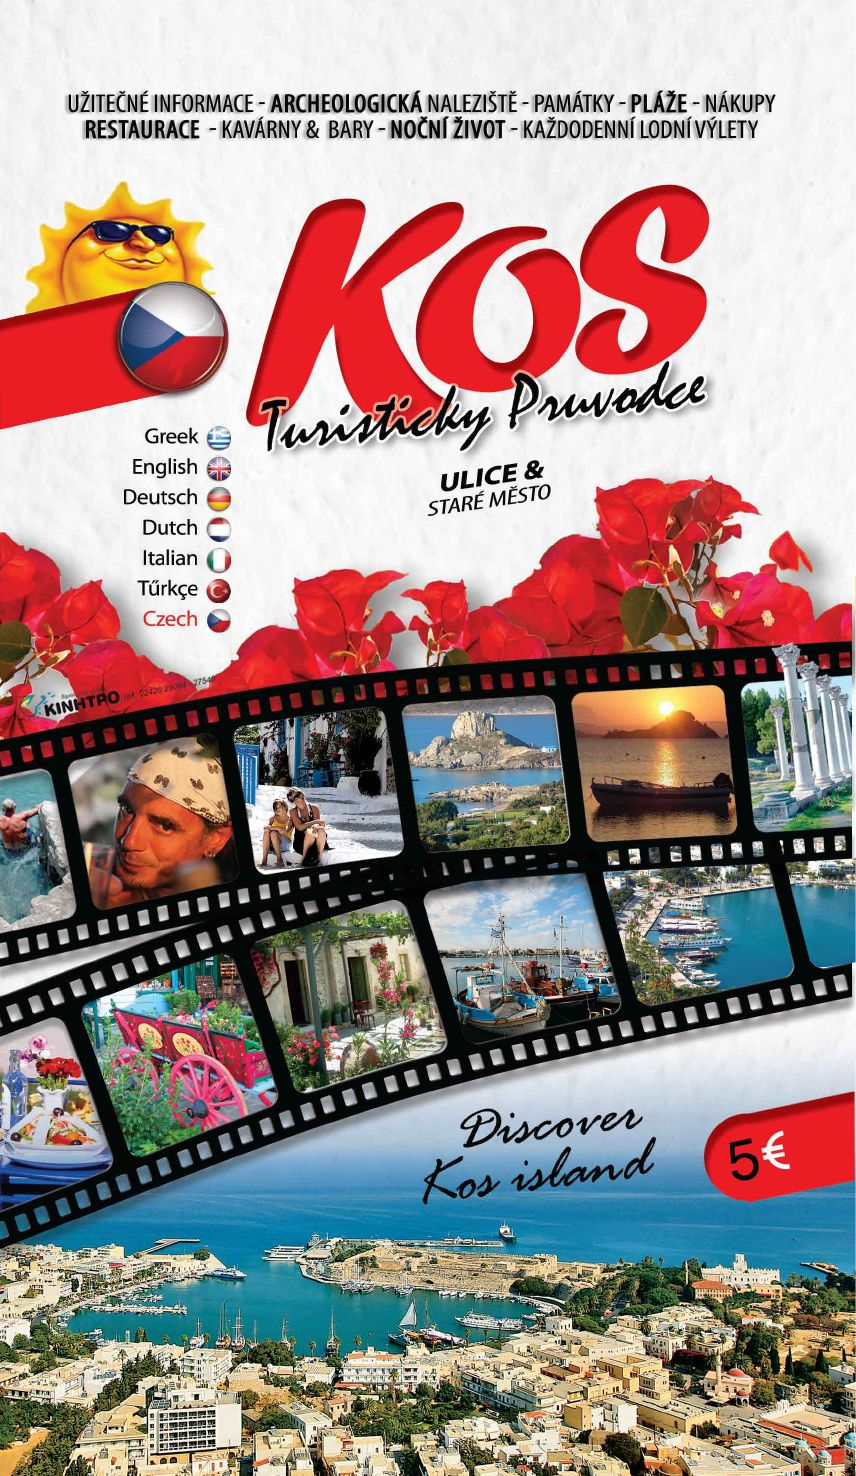 dc619d8fc4f3 Kos Visitor s Guide - Czech by Ioannis Paneras - issuu